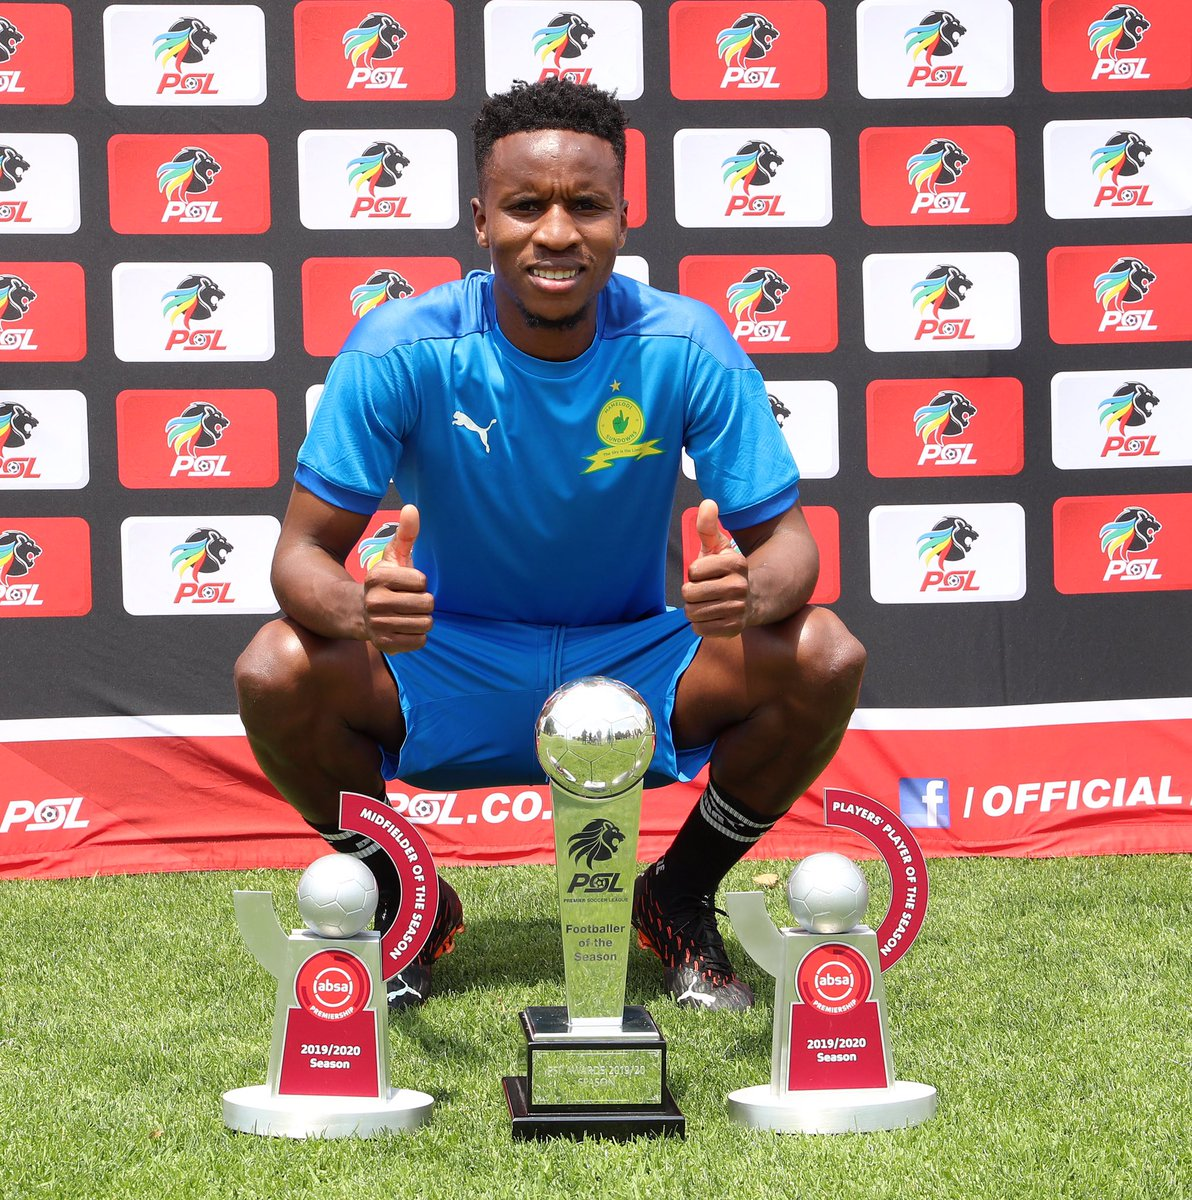 CONGRATULATIONS Themba Zwane :   - 2019/20 PSL Footballer of the Season  - Absa Premiership Player's Player of the Season  - Absa Premiership Midfielder of the Season   #PSLAwards20  @Masandawana https://t.co/yGLaKJ3j69